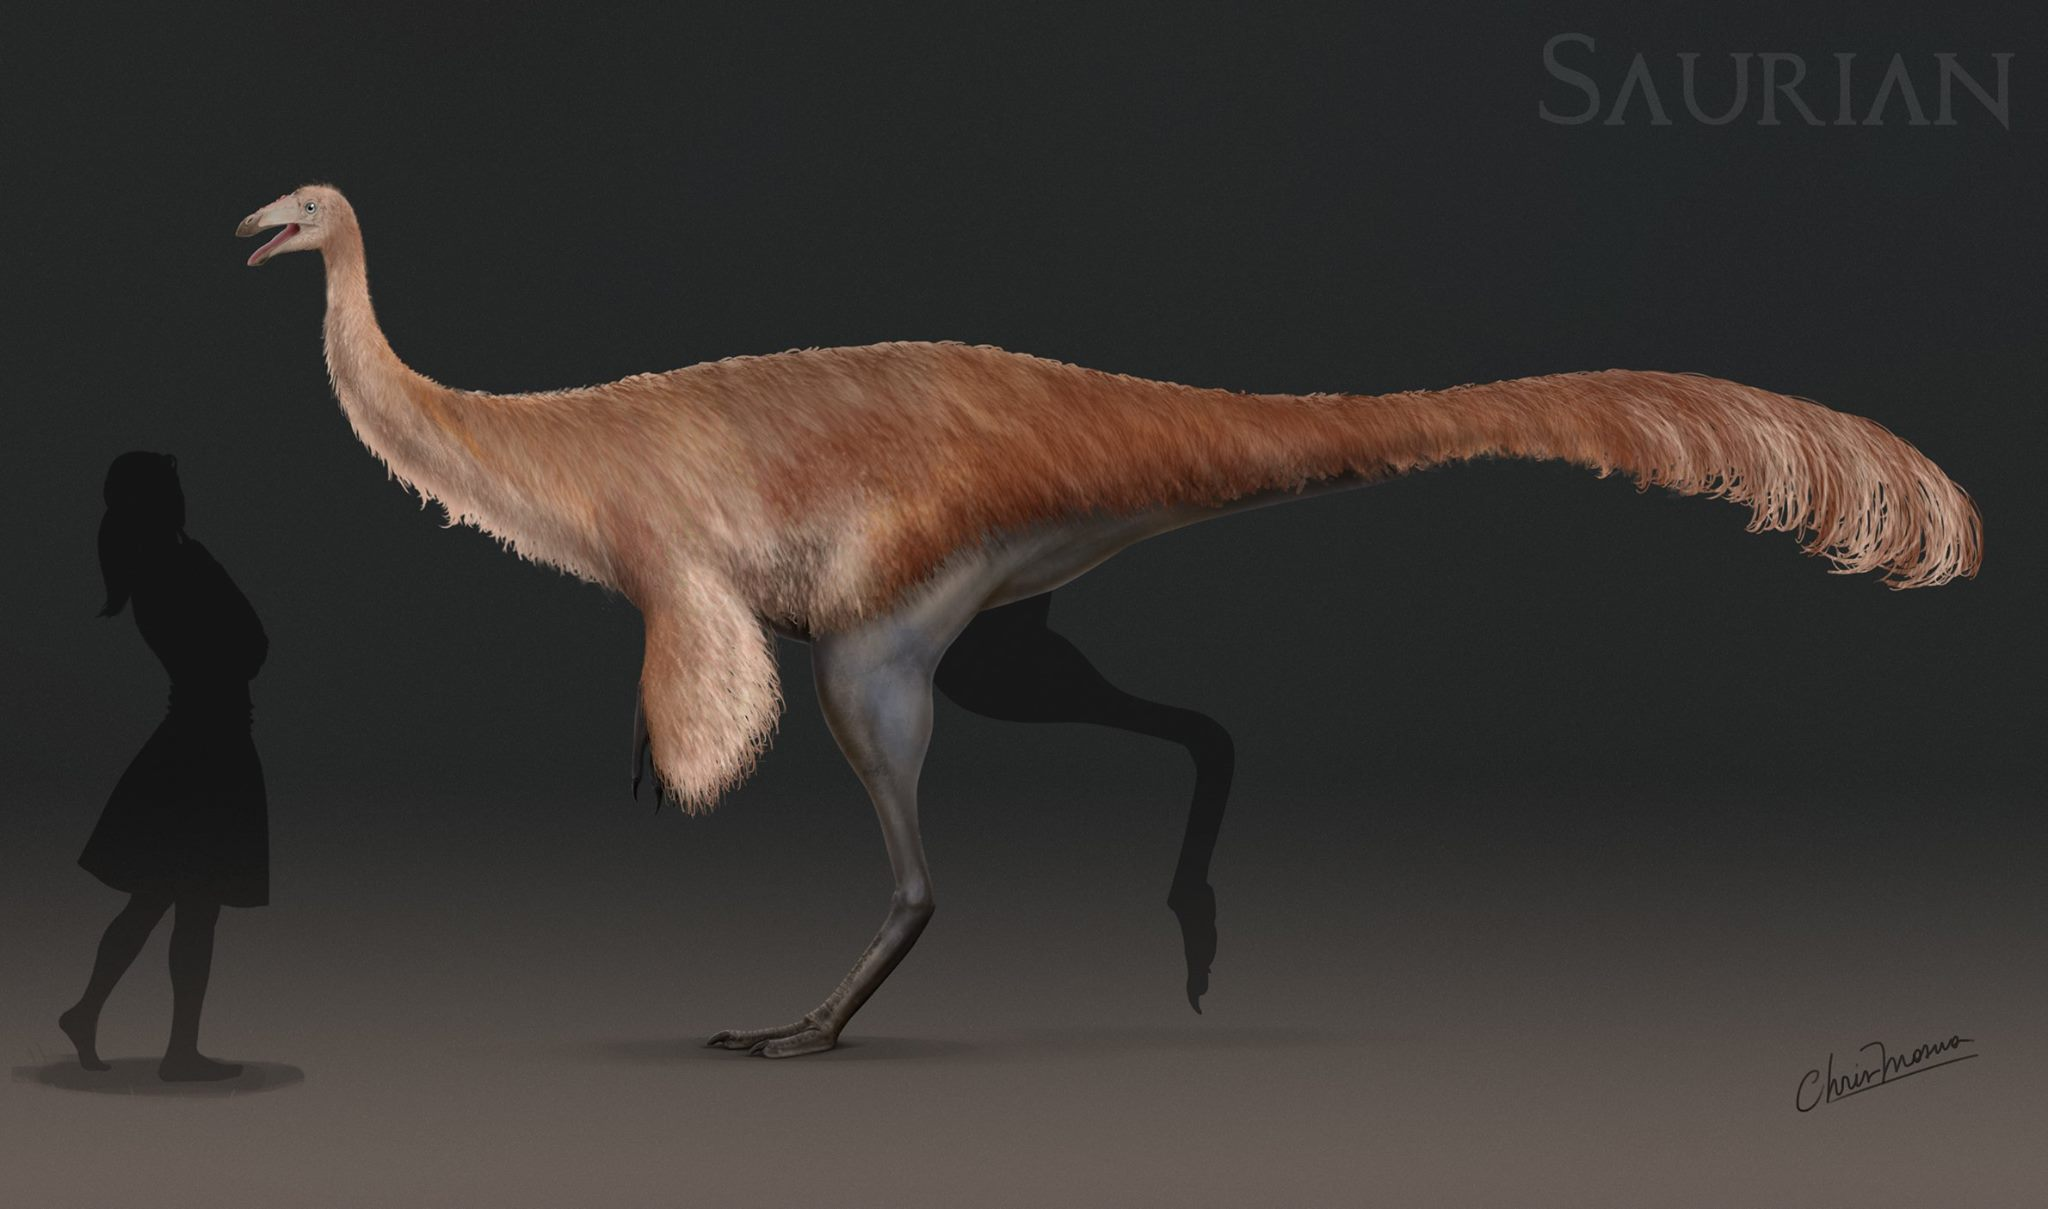 Ornithomimid-Konzept in Saurian